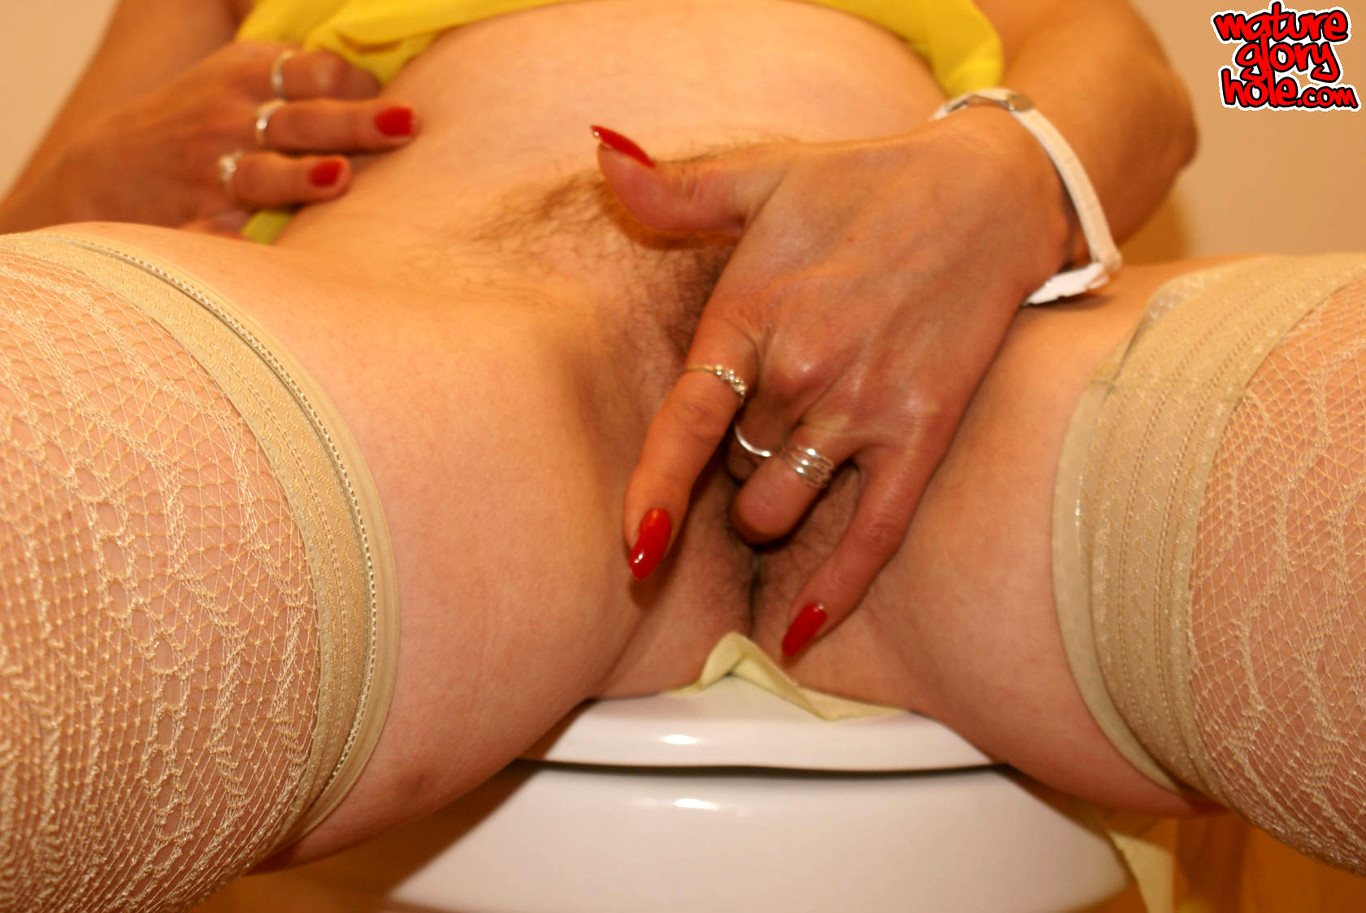 Glory hole porn download-7540